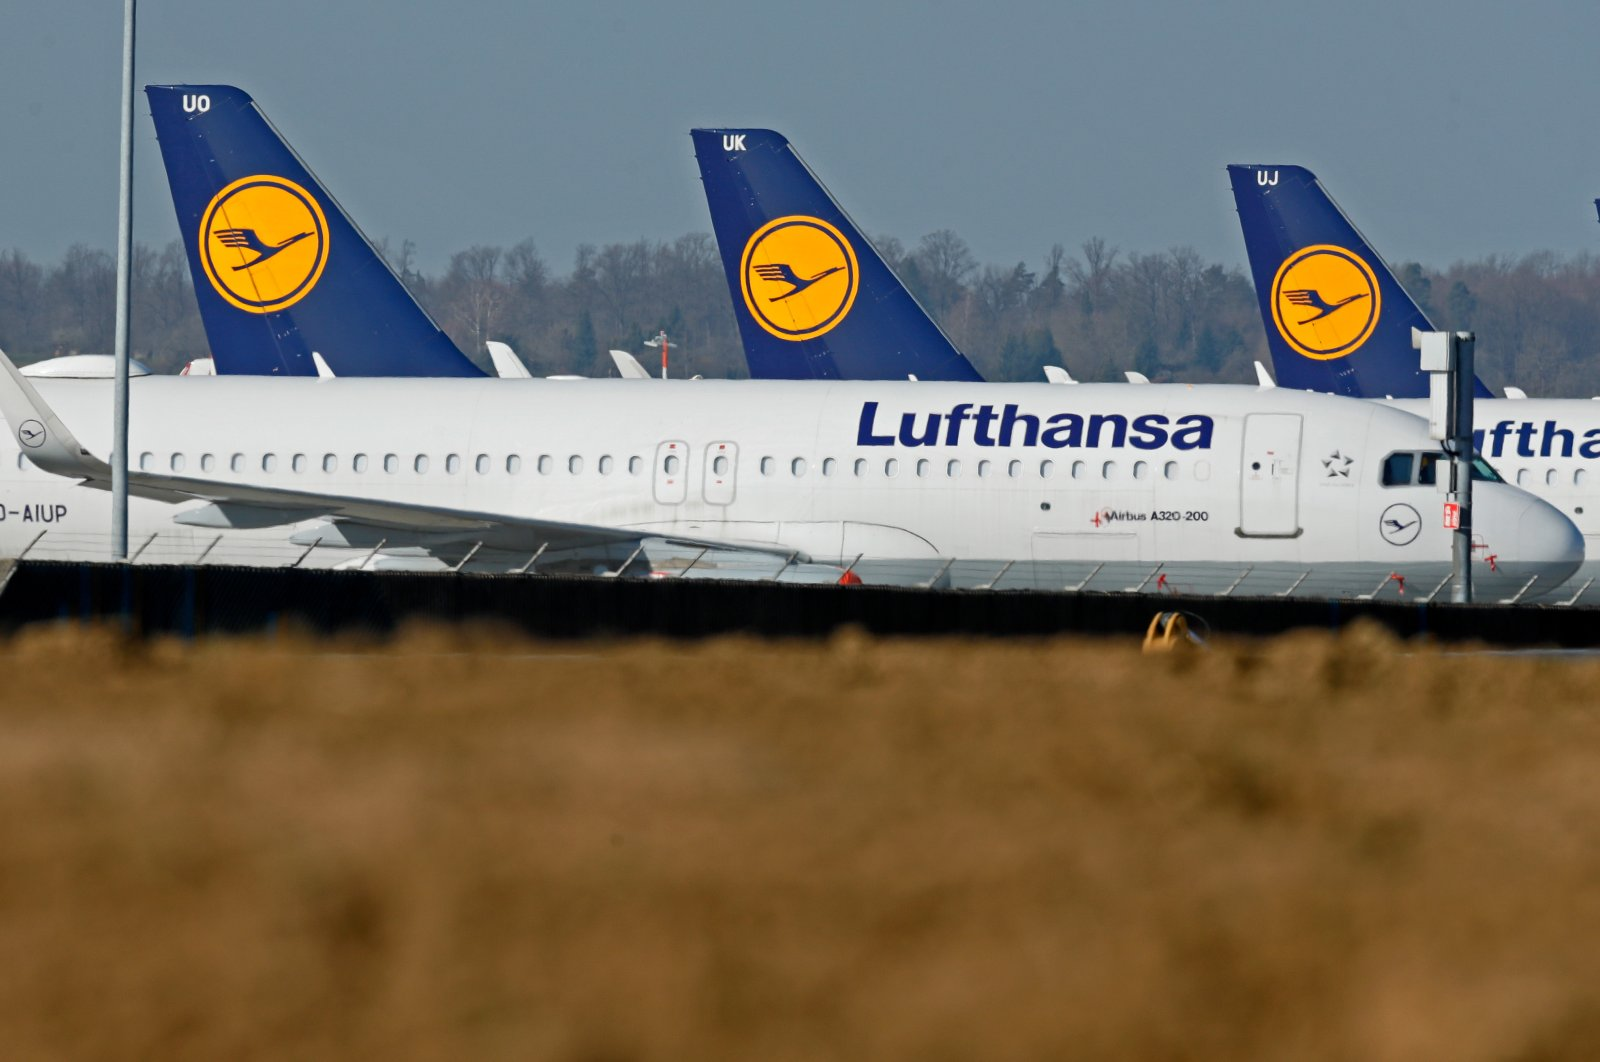 Aircrafts from German air carrier Lufthansa sit on blocks at the international airport in Stuttgart, Germany, April 6 2020. (EPA Photo)